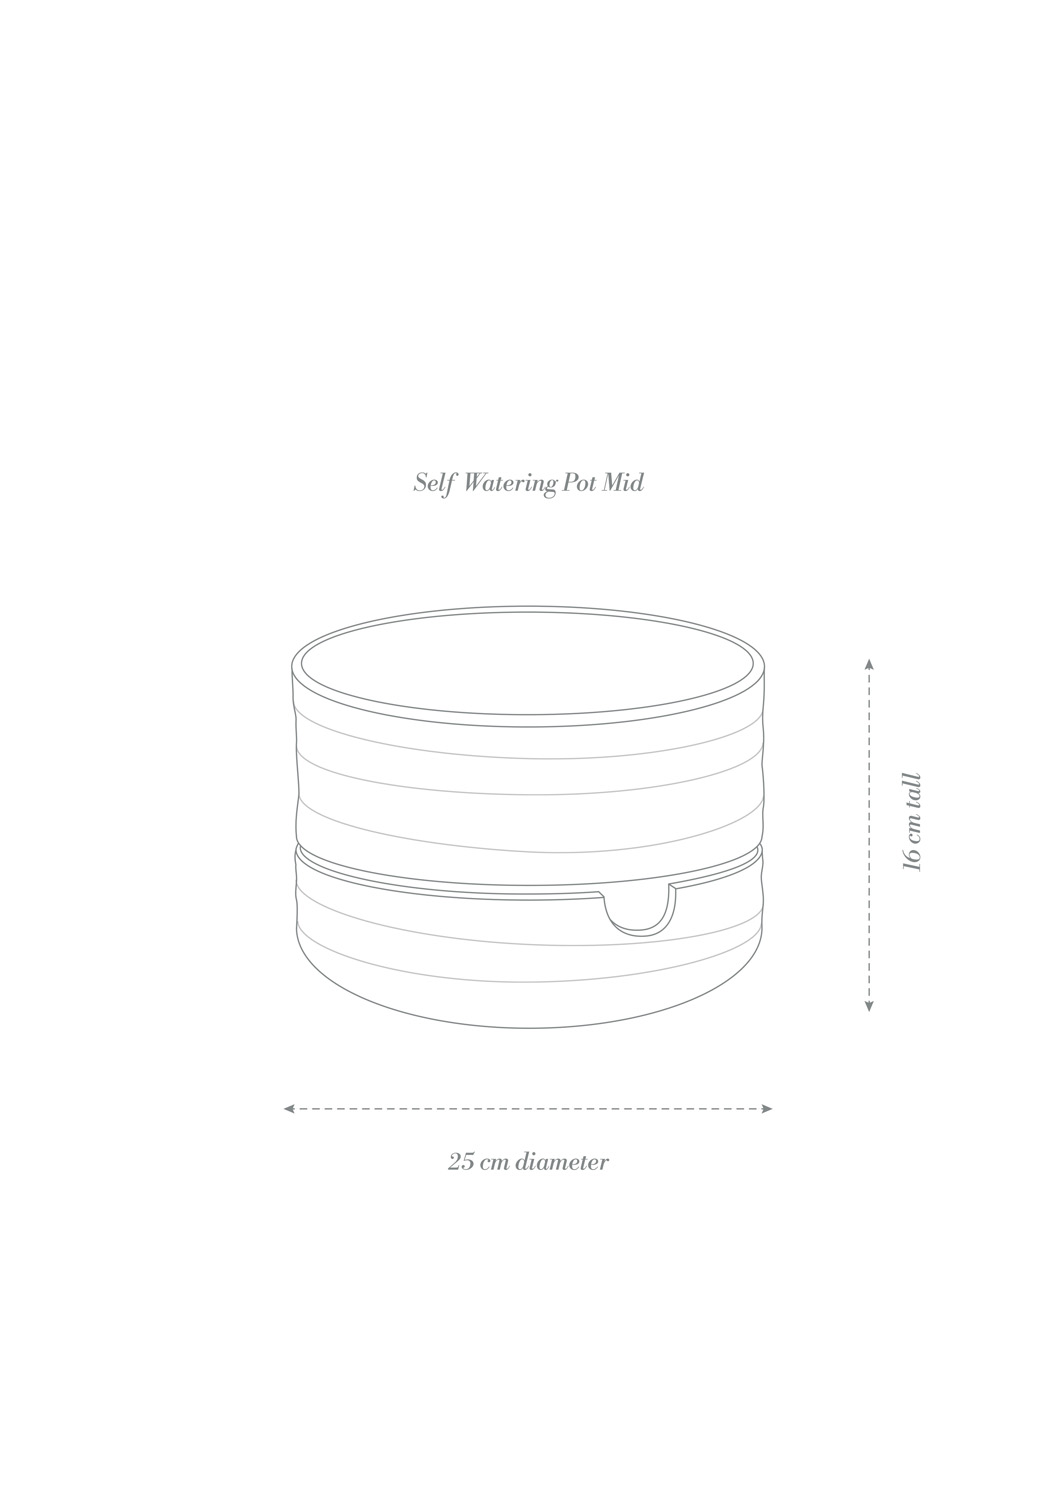 Angus & Celeste Self Watering Plant Pot Mid Product Diagram